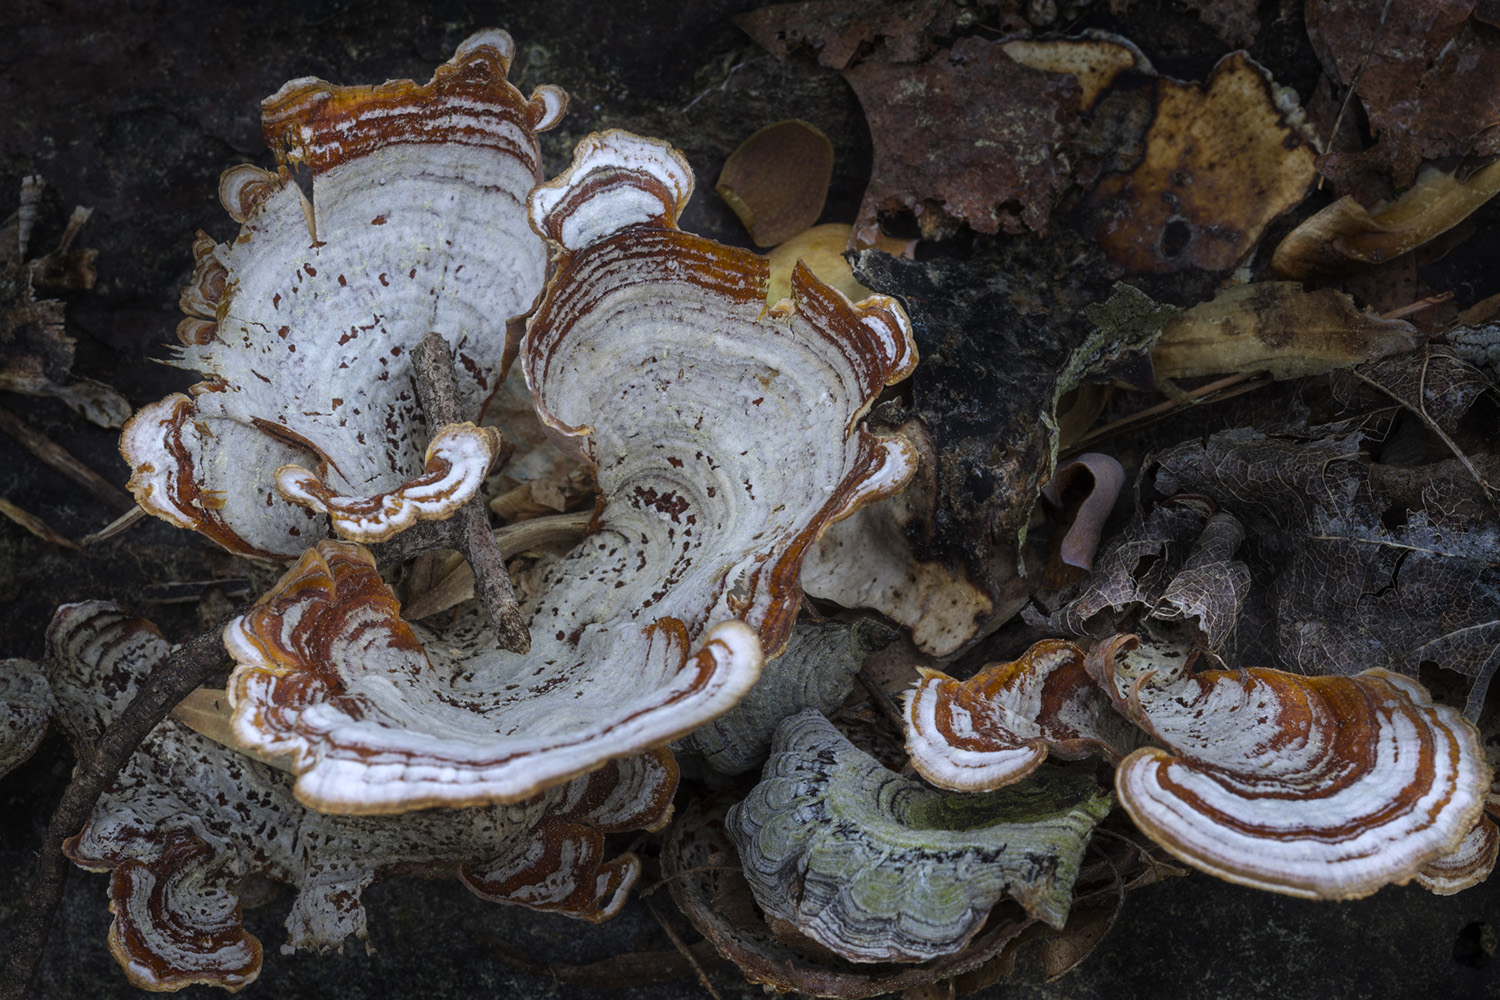 023_Turkey Tail Fungus.jpg